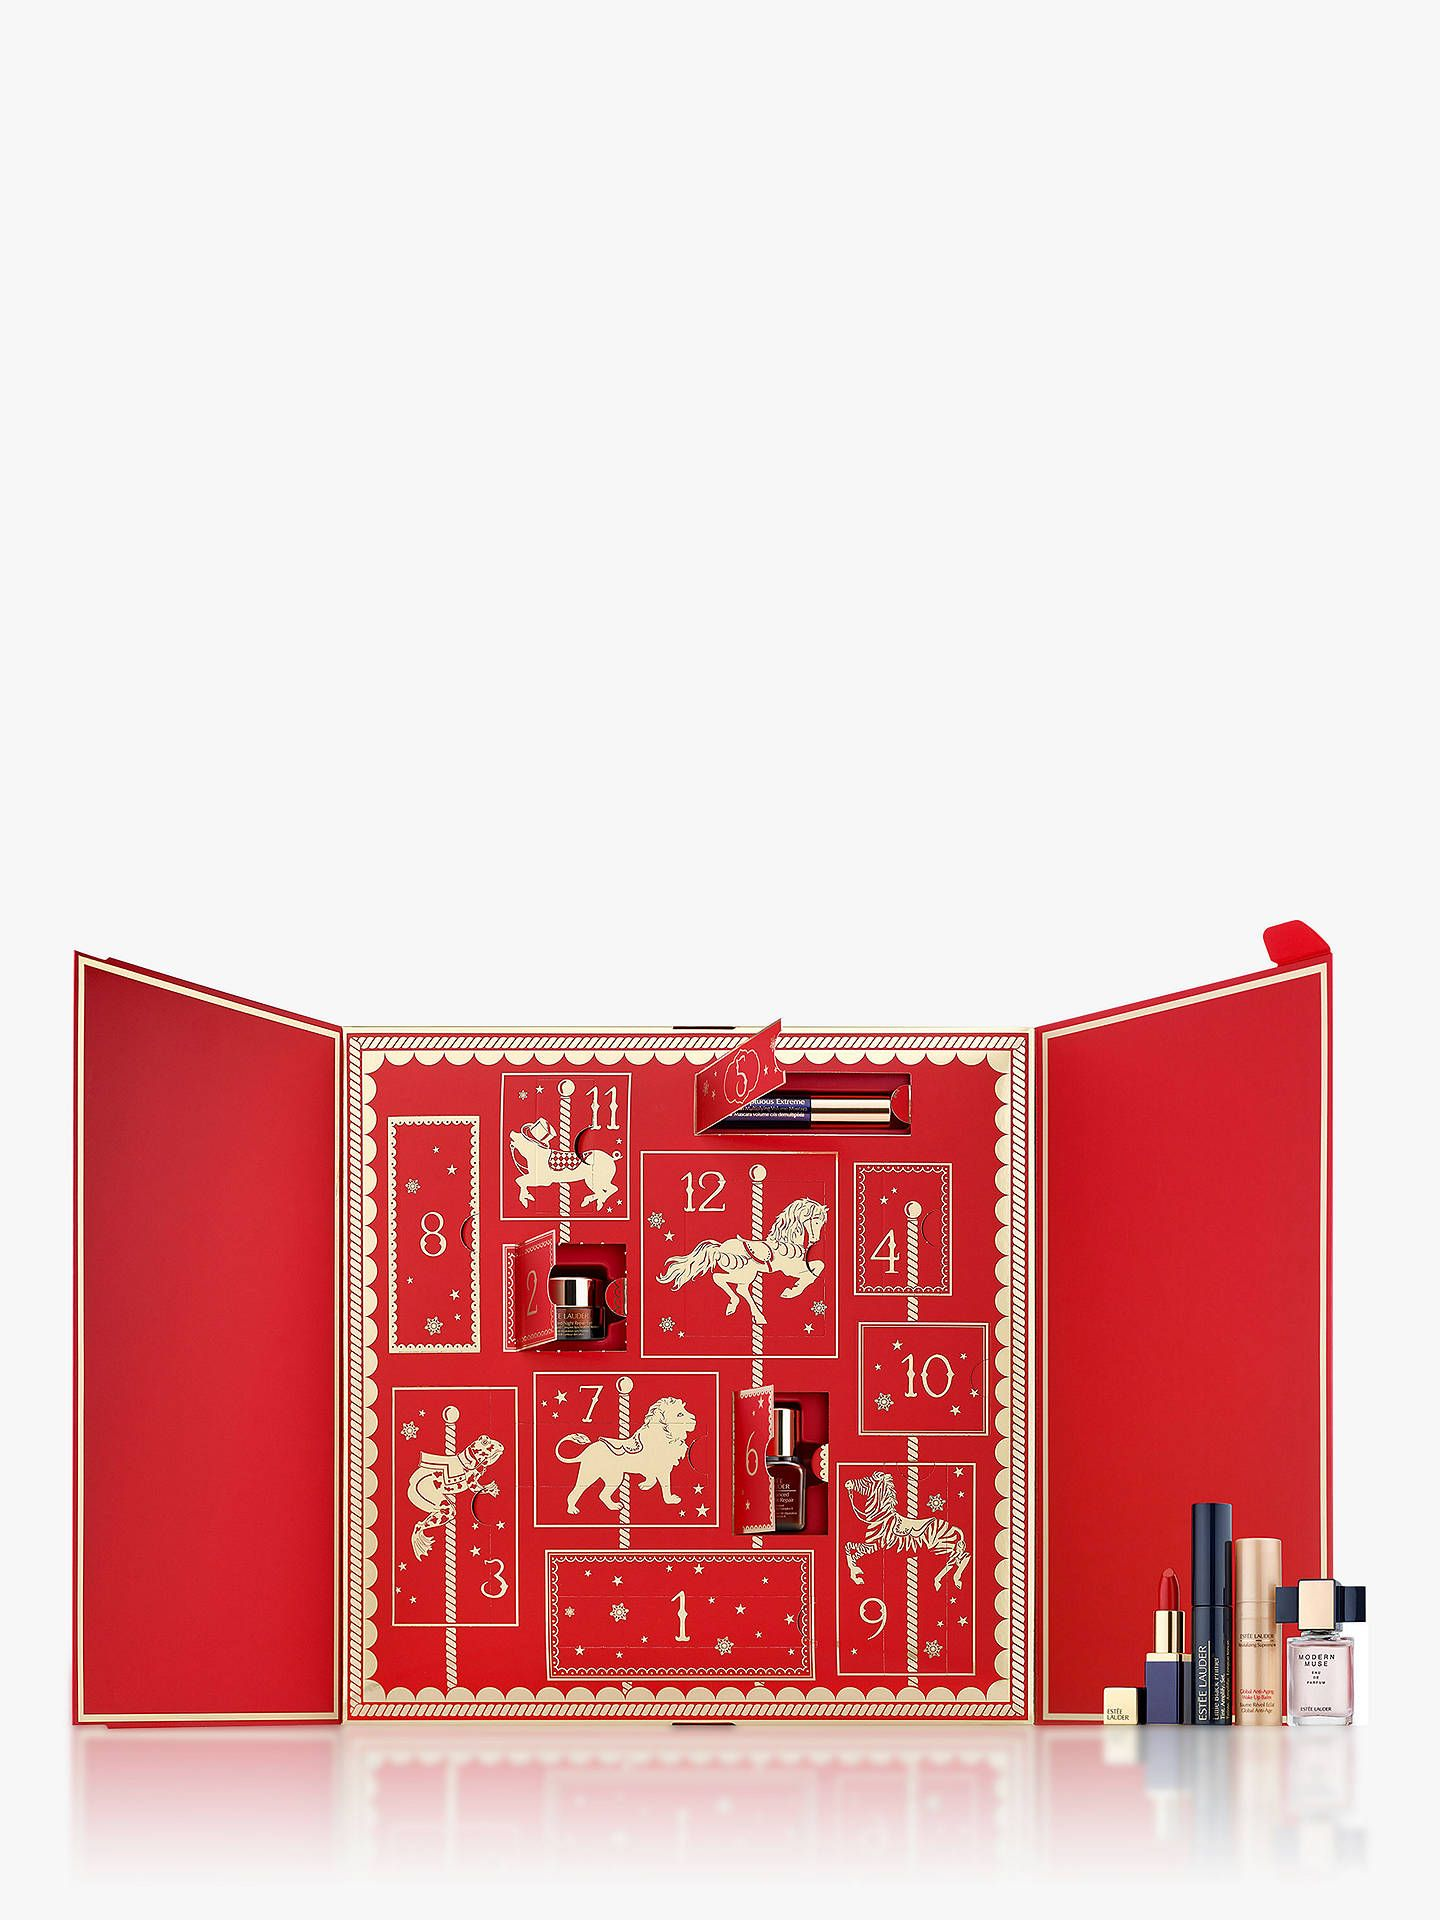 Estee Lauder Holiday 12 Day Advent Calendar Beauty Advent Calendar Estee Online Calendar